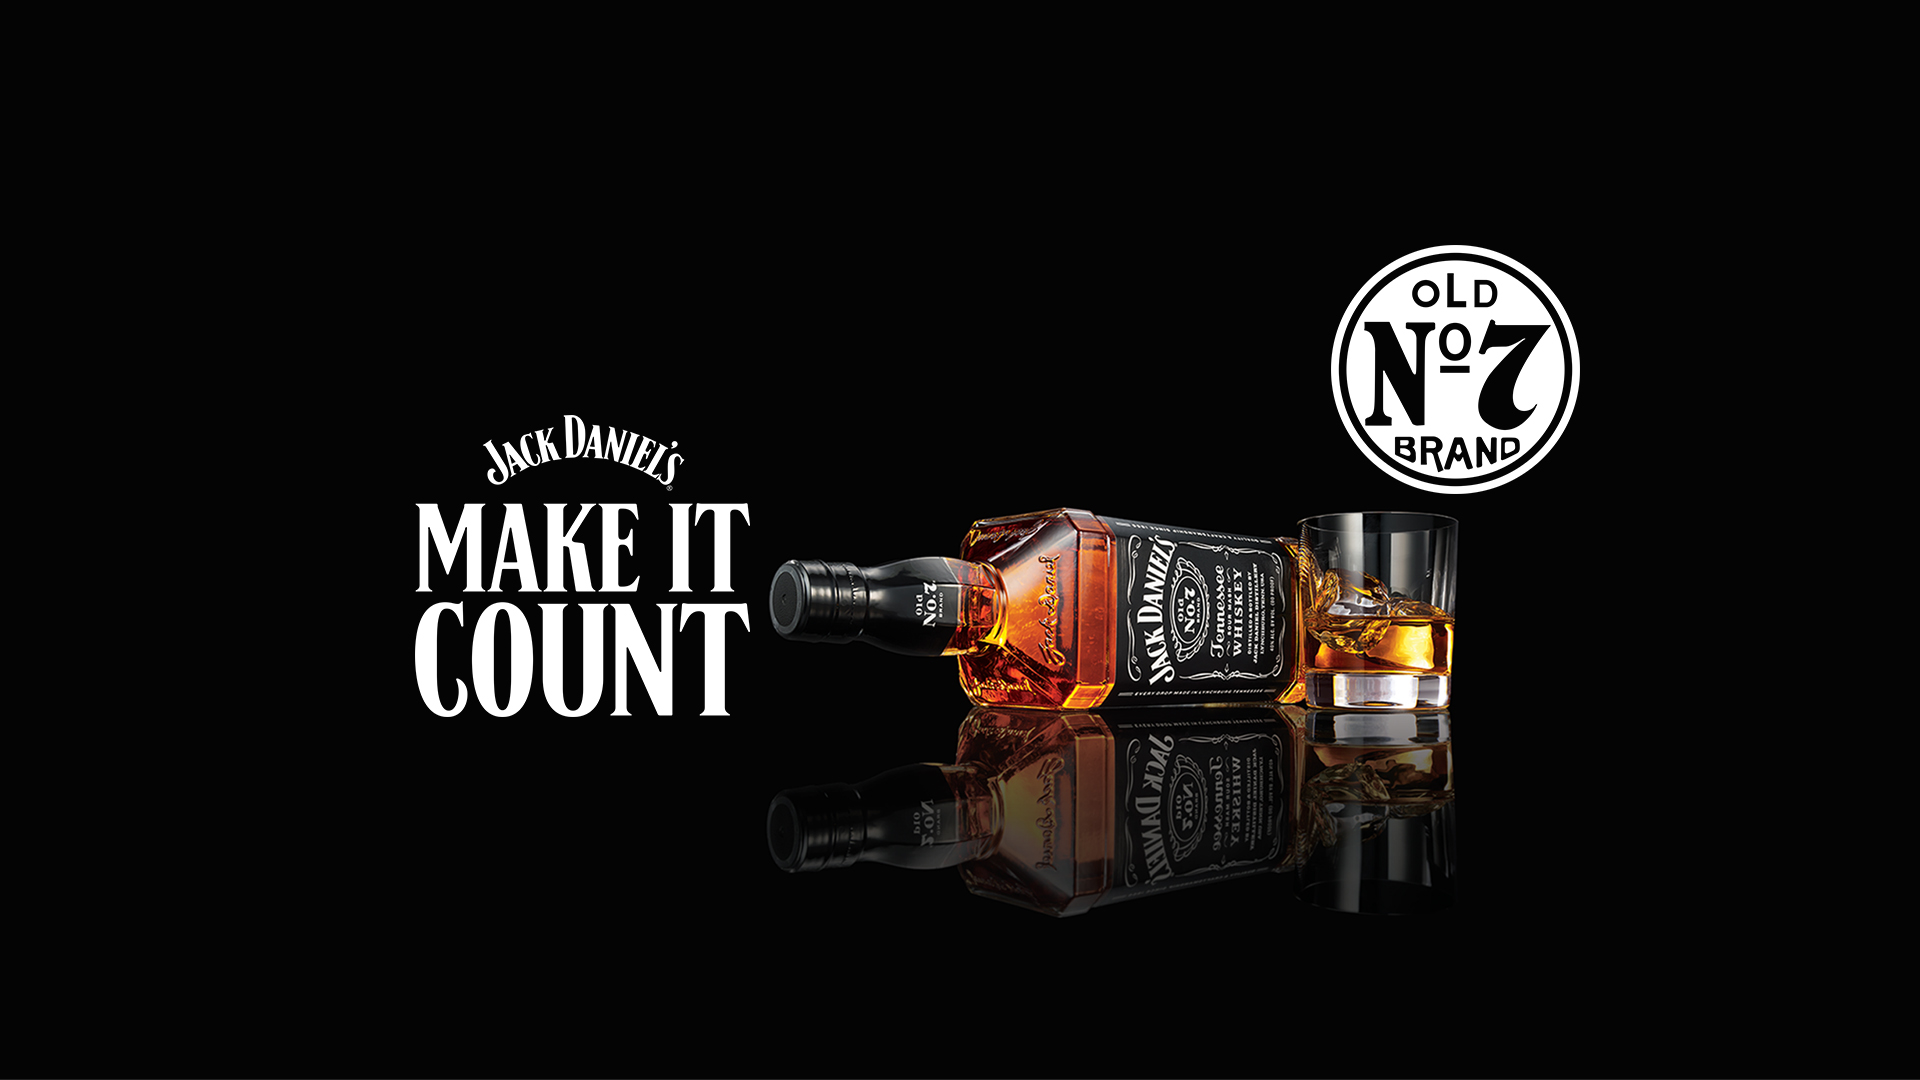 Jack Daniel's, Make it Count! 🥃